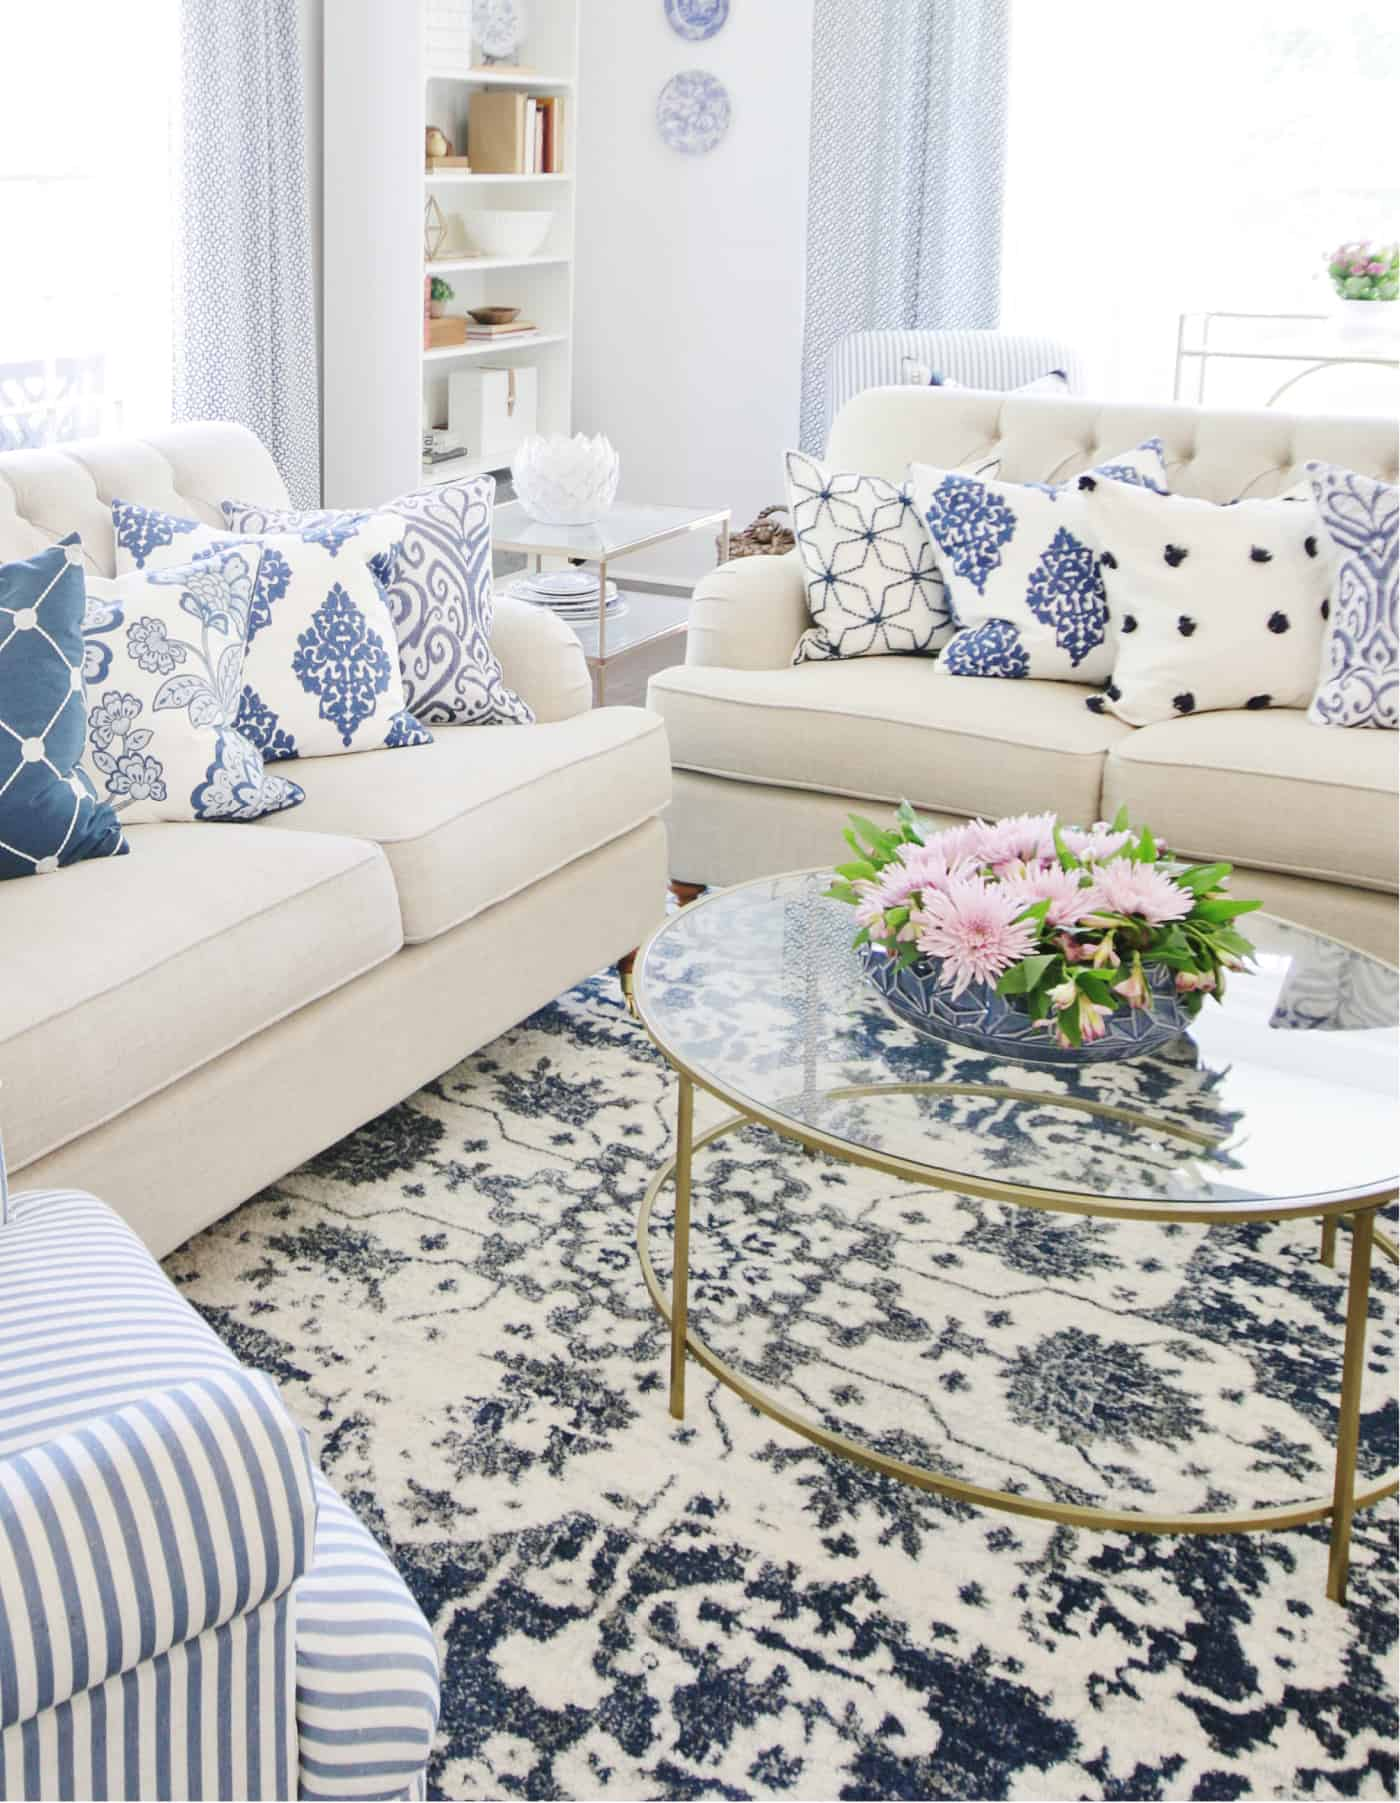 How To Decorate A Coffee Table 21 Simple Ideas Thistlewood Farm